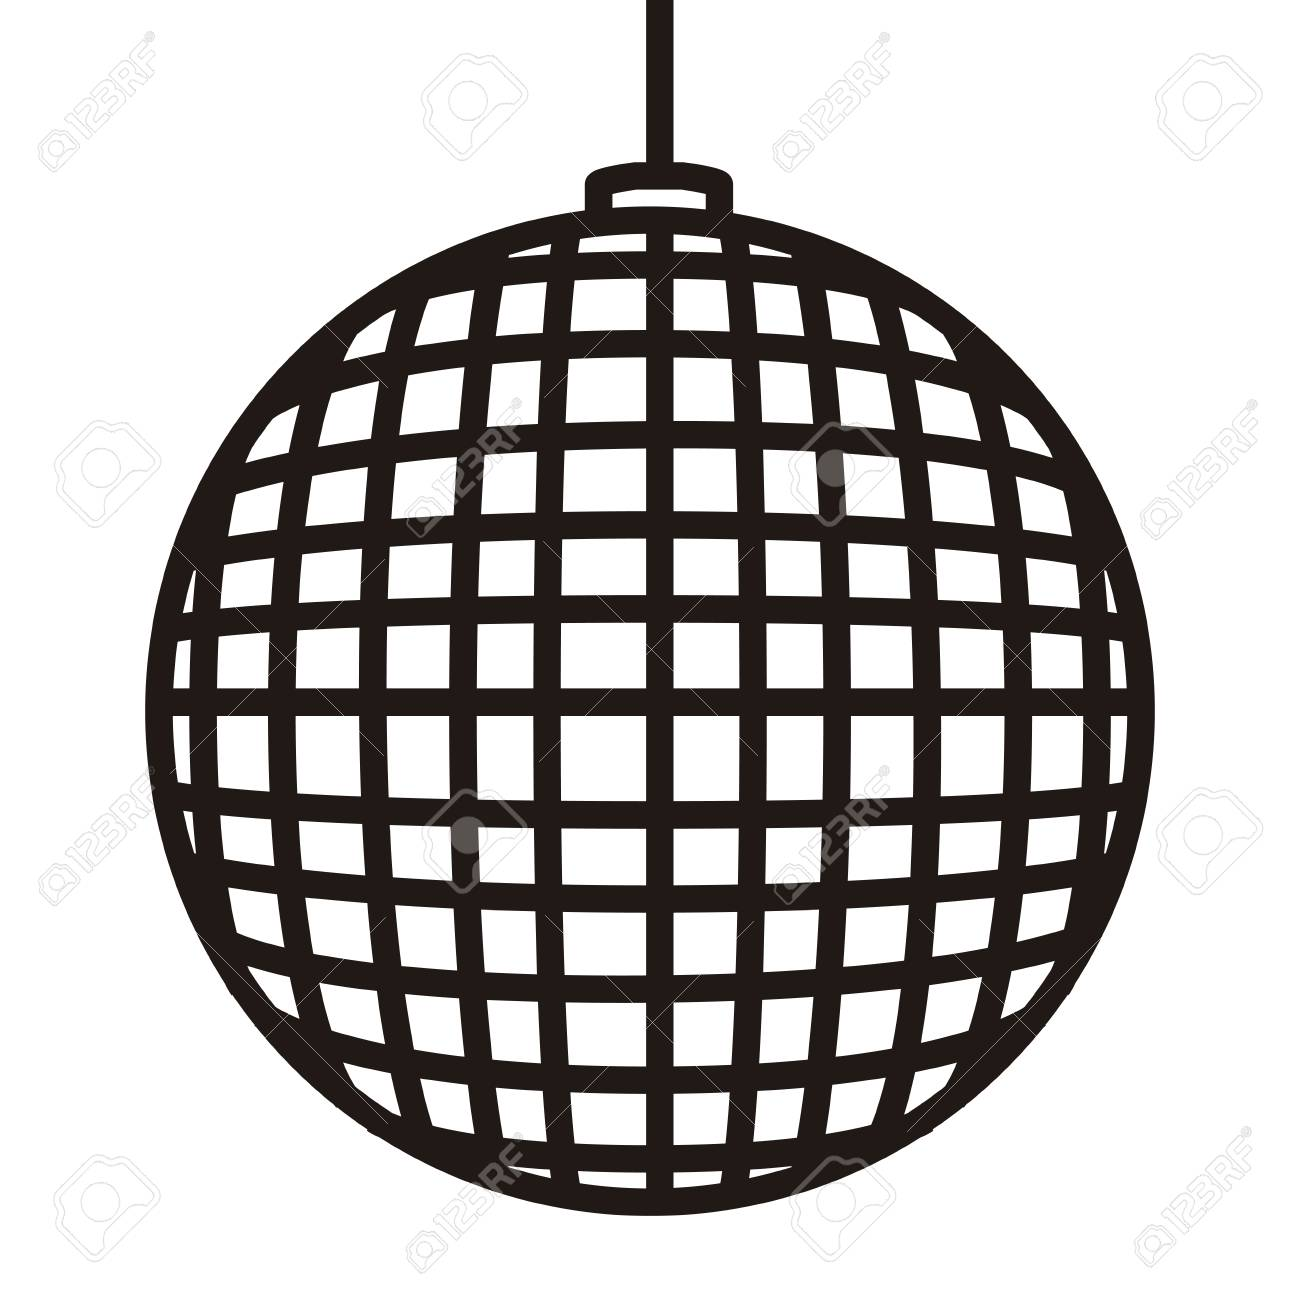 hight resolution of disco ball icon in black and white illustration stock vector 93795734